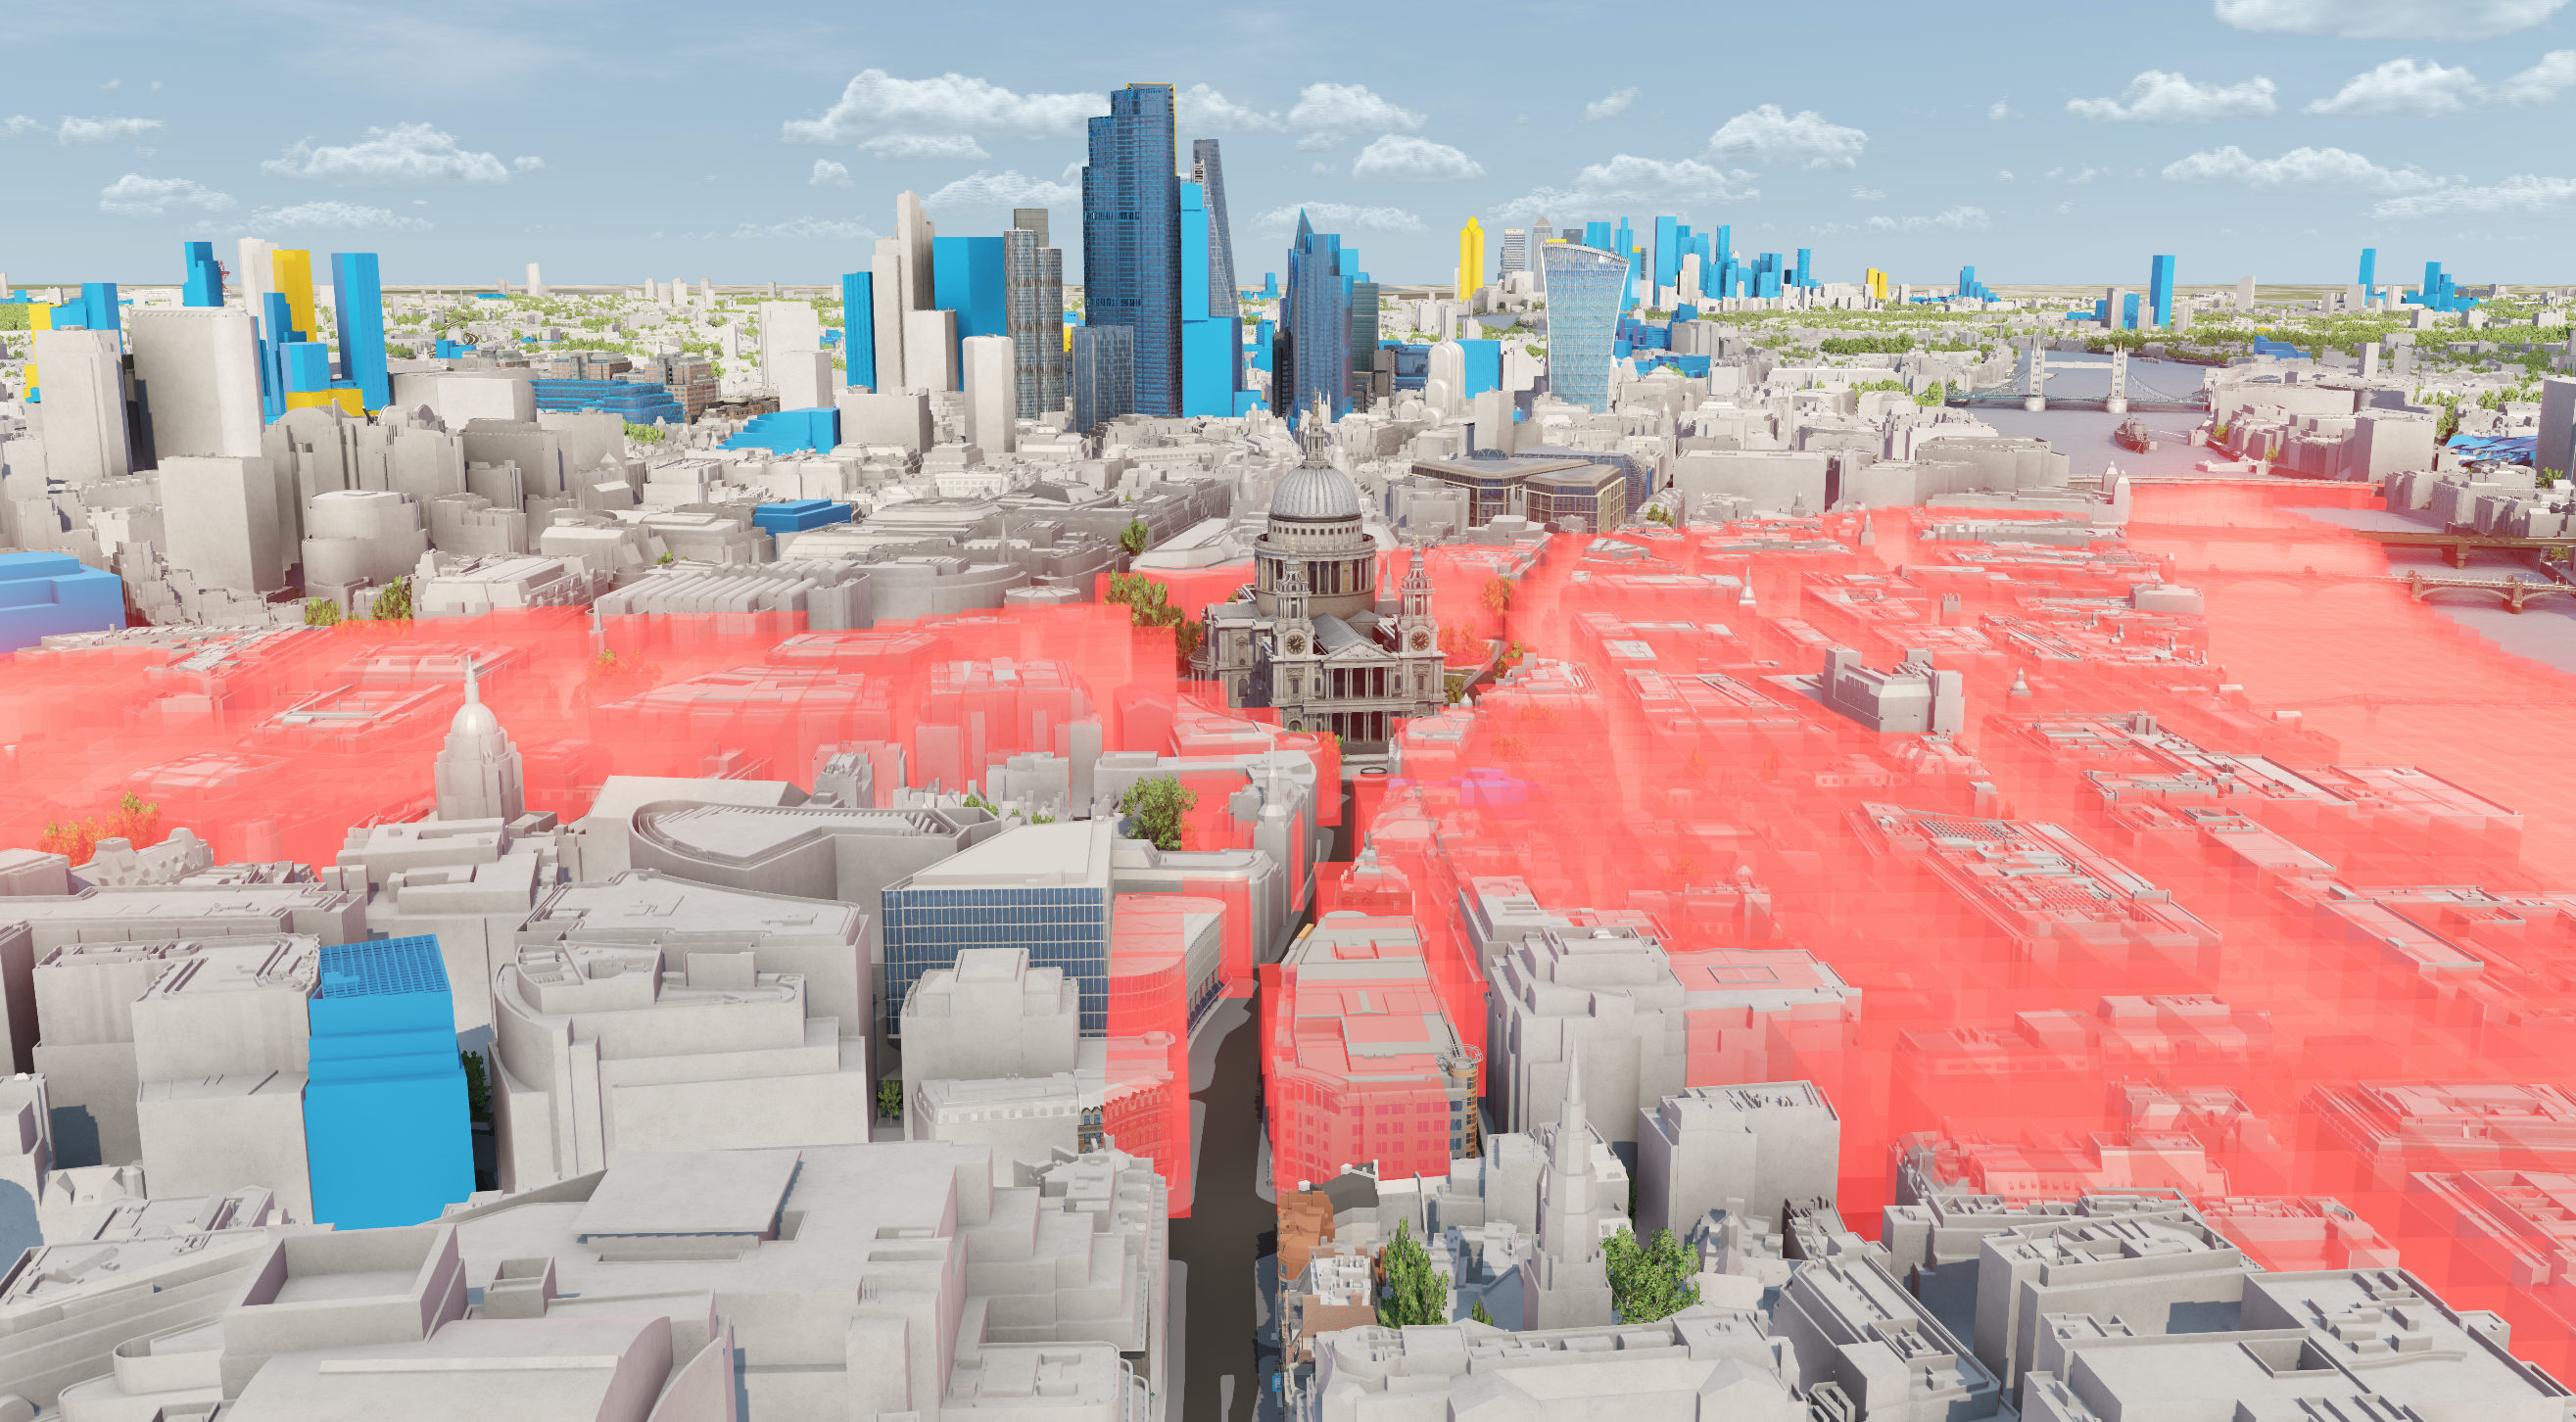 CGI image of 3d maps of london skyline showing sight lines between buildings